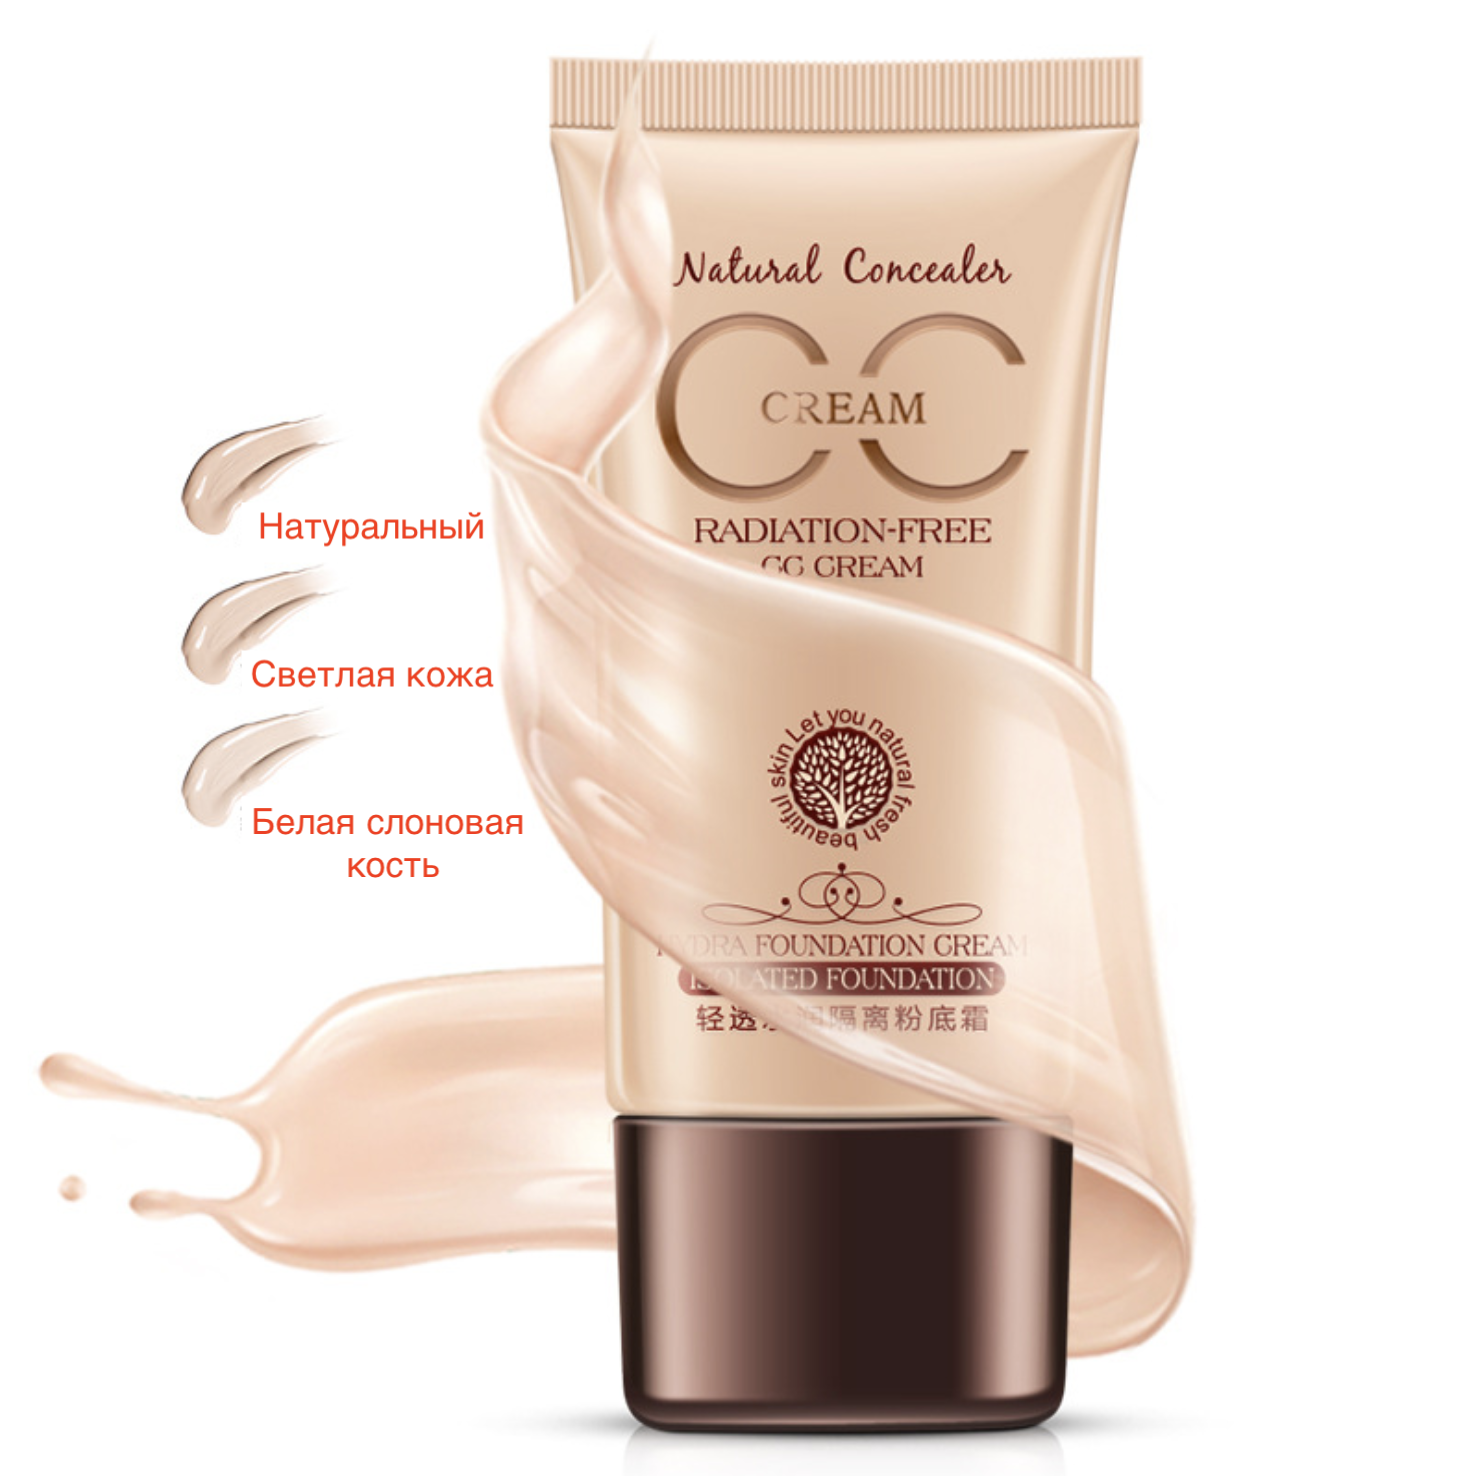 CC крем Isolation Foundation Cream (слоновая кость), 40гр.